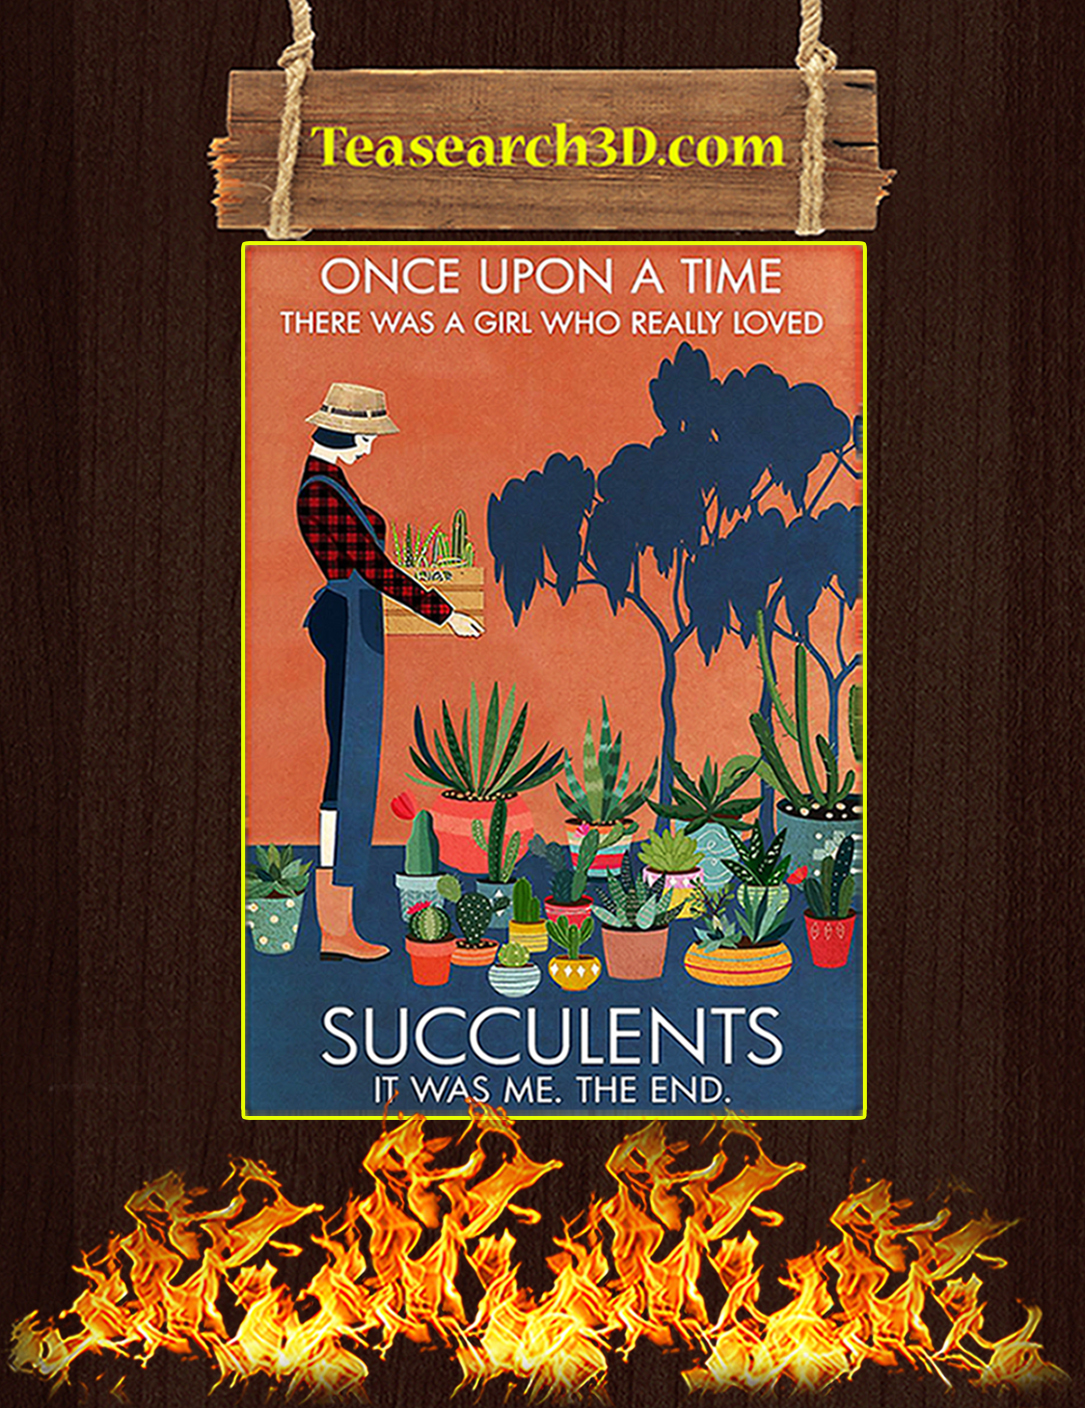 Once upon a time there was a girl loved succulents poster A2